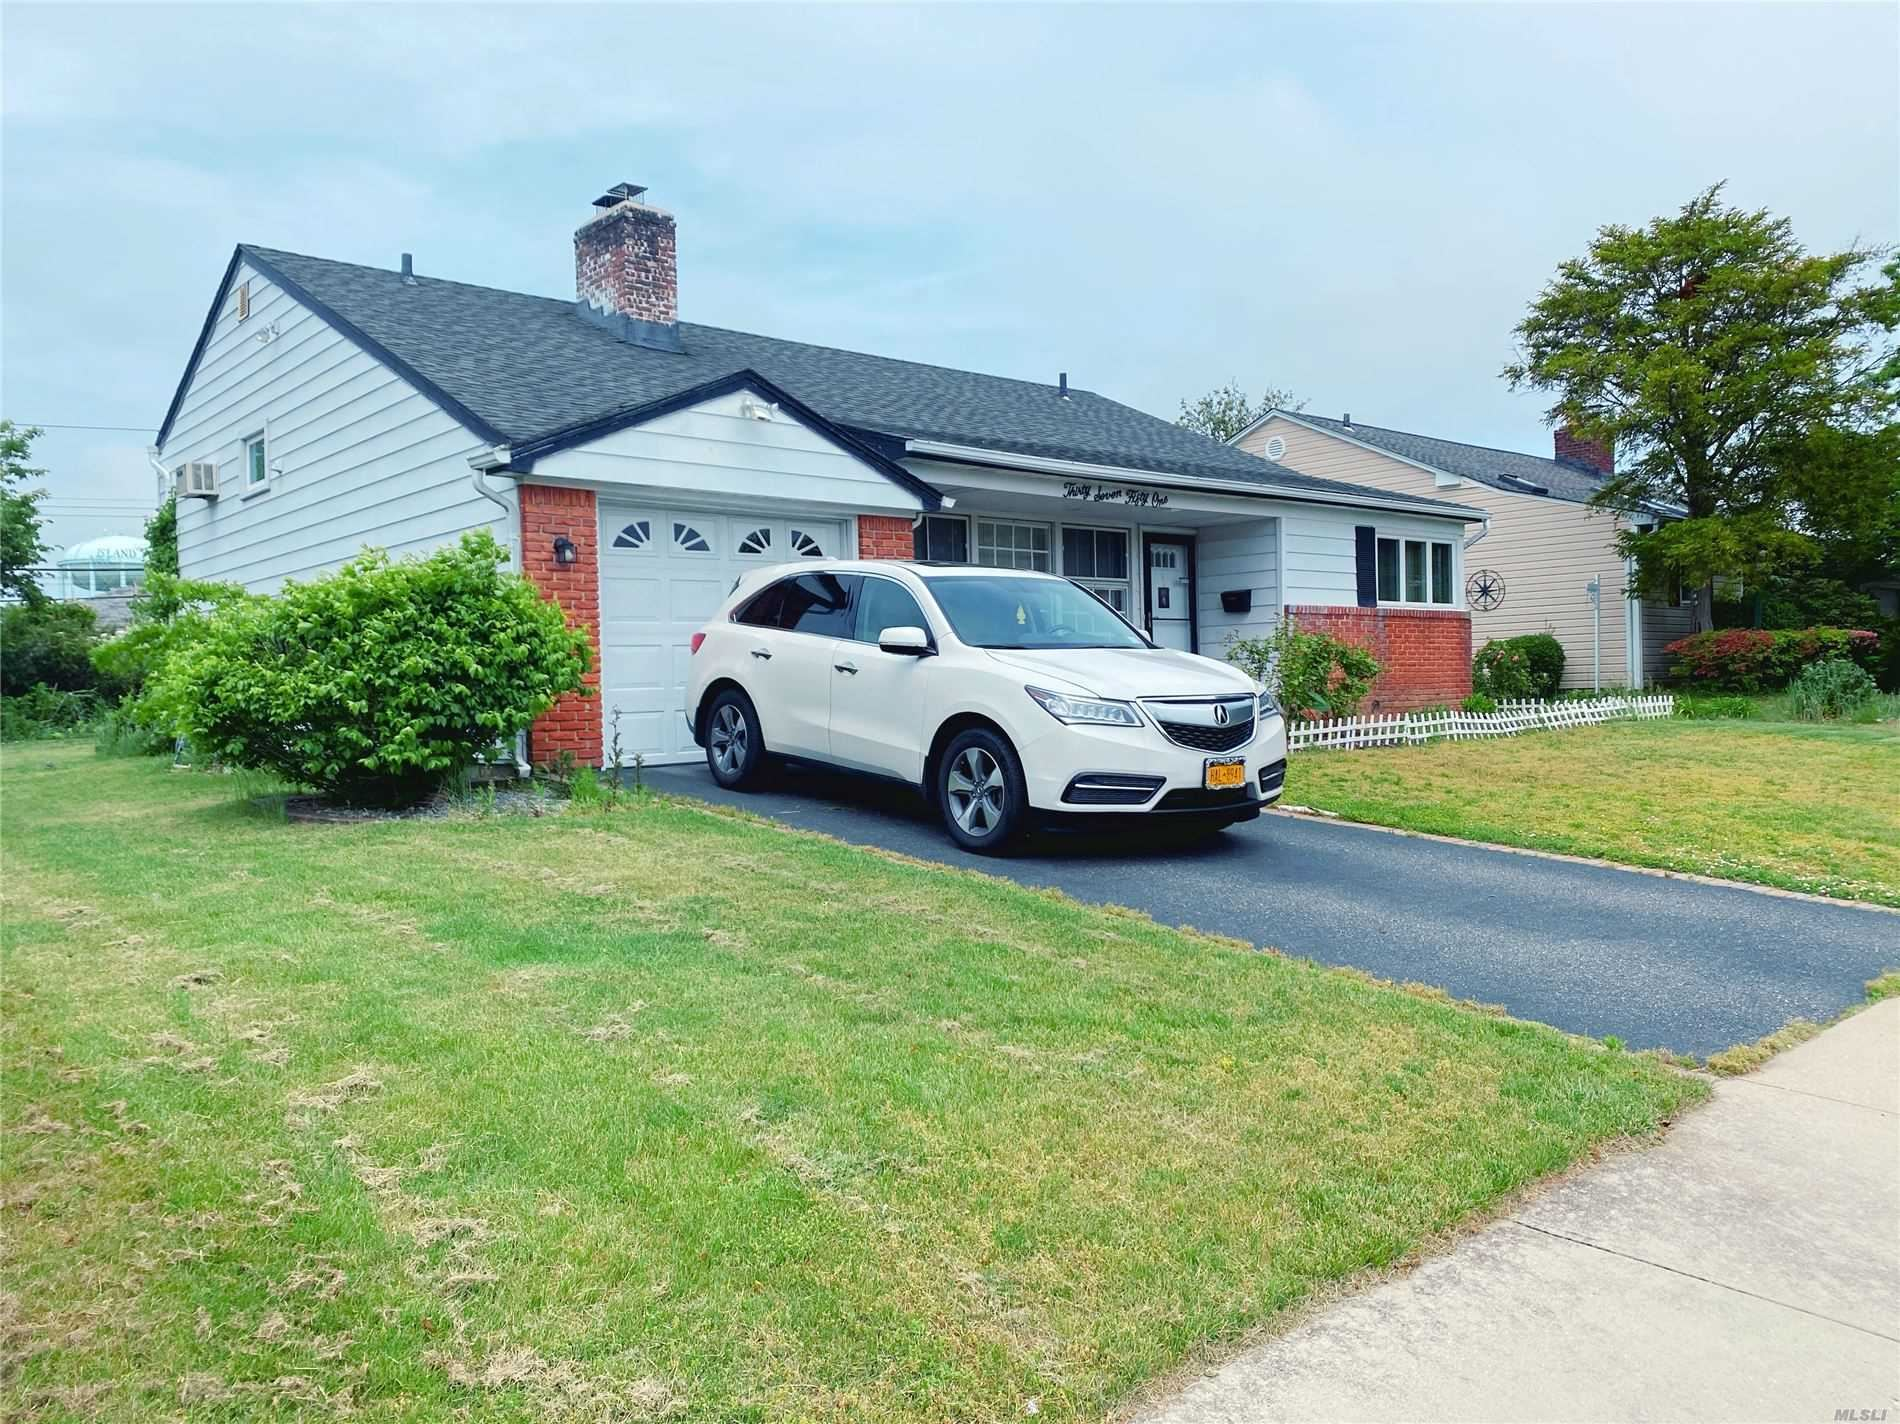 3751 Dianne St, Bethpage, NY 11714 - MLS#: 3218091